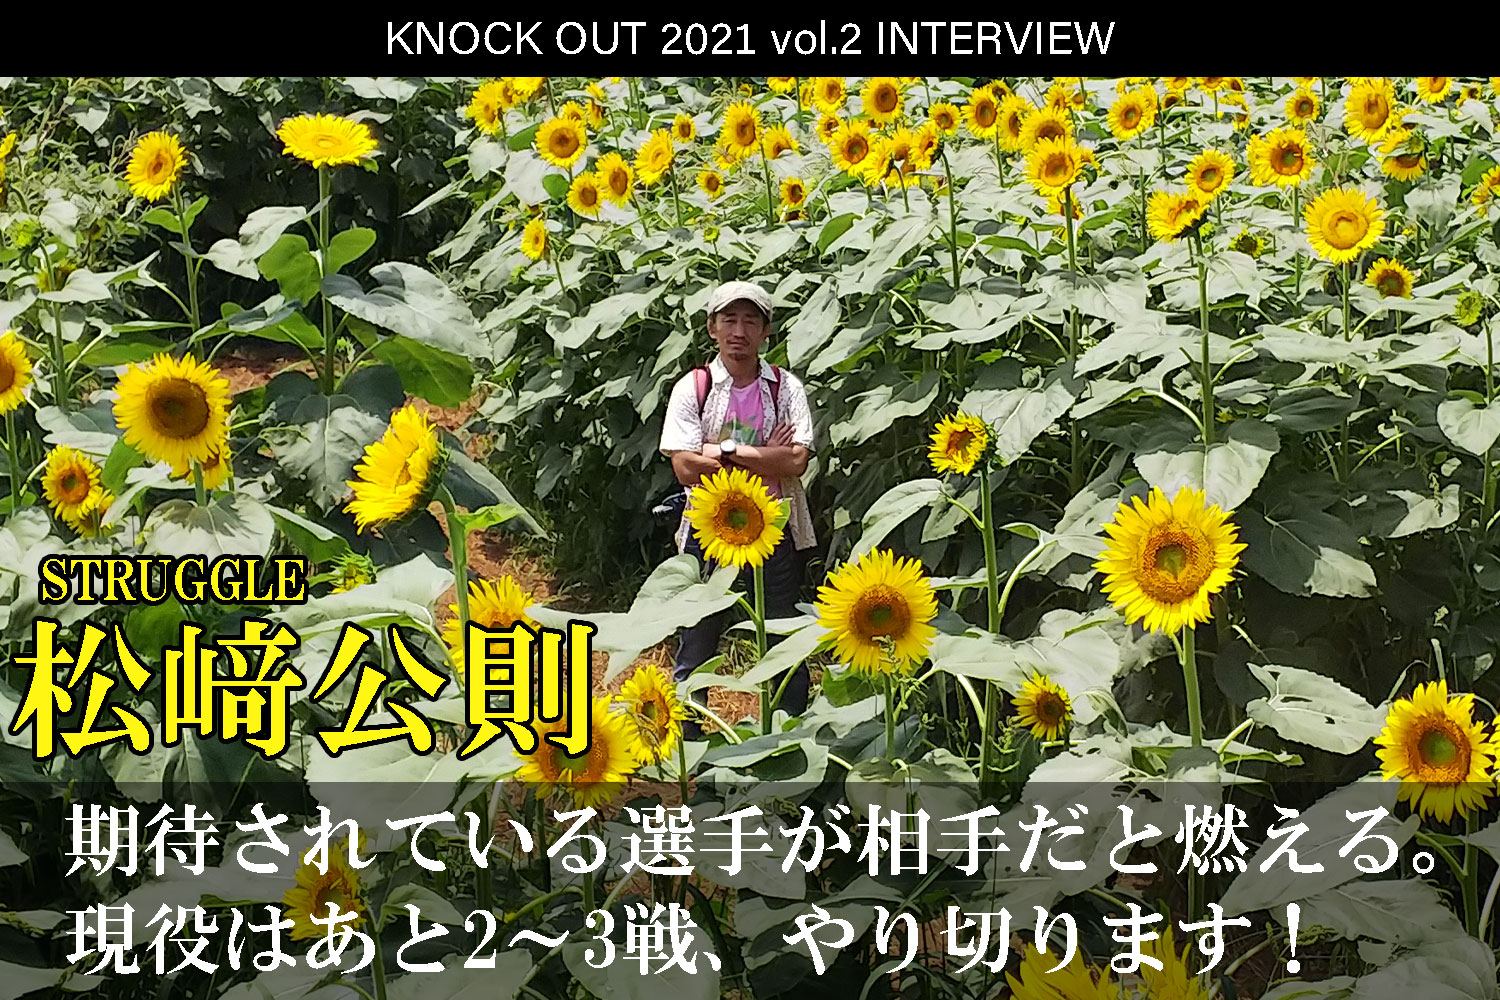 4.25 KNOCK OUT 2021 vol.2 松﨑公則インタビュー公開!